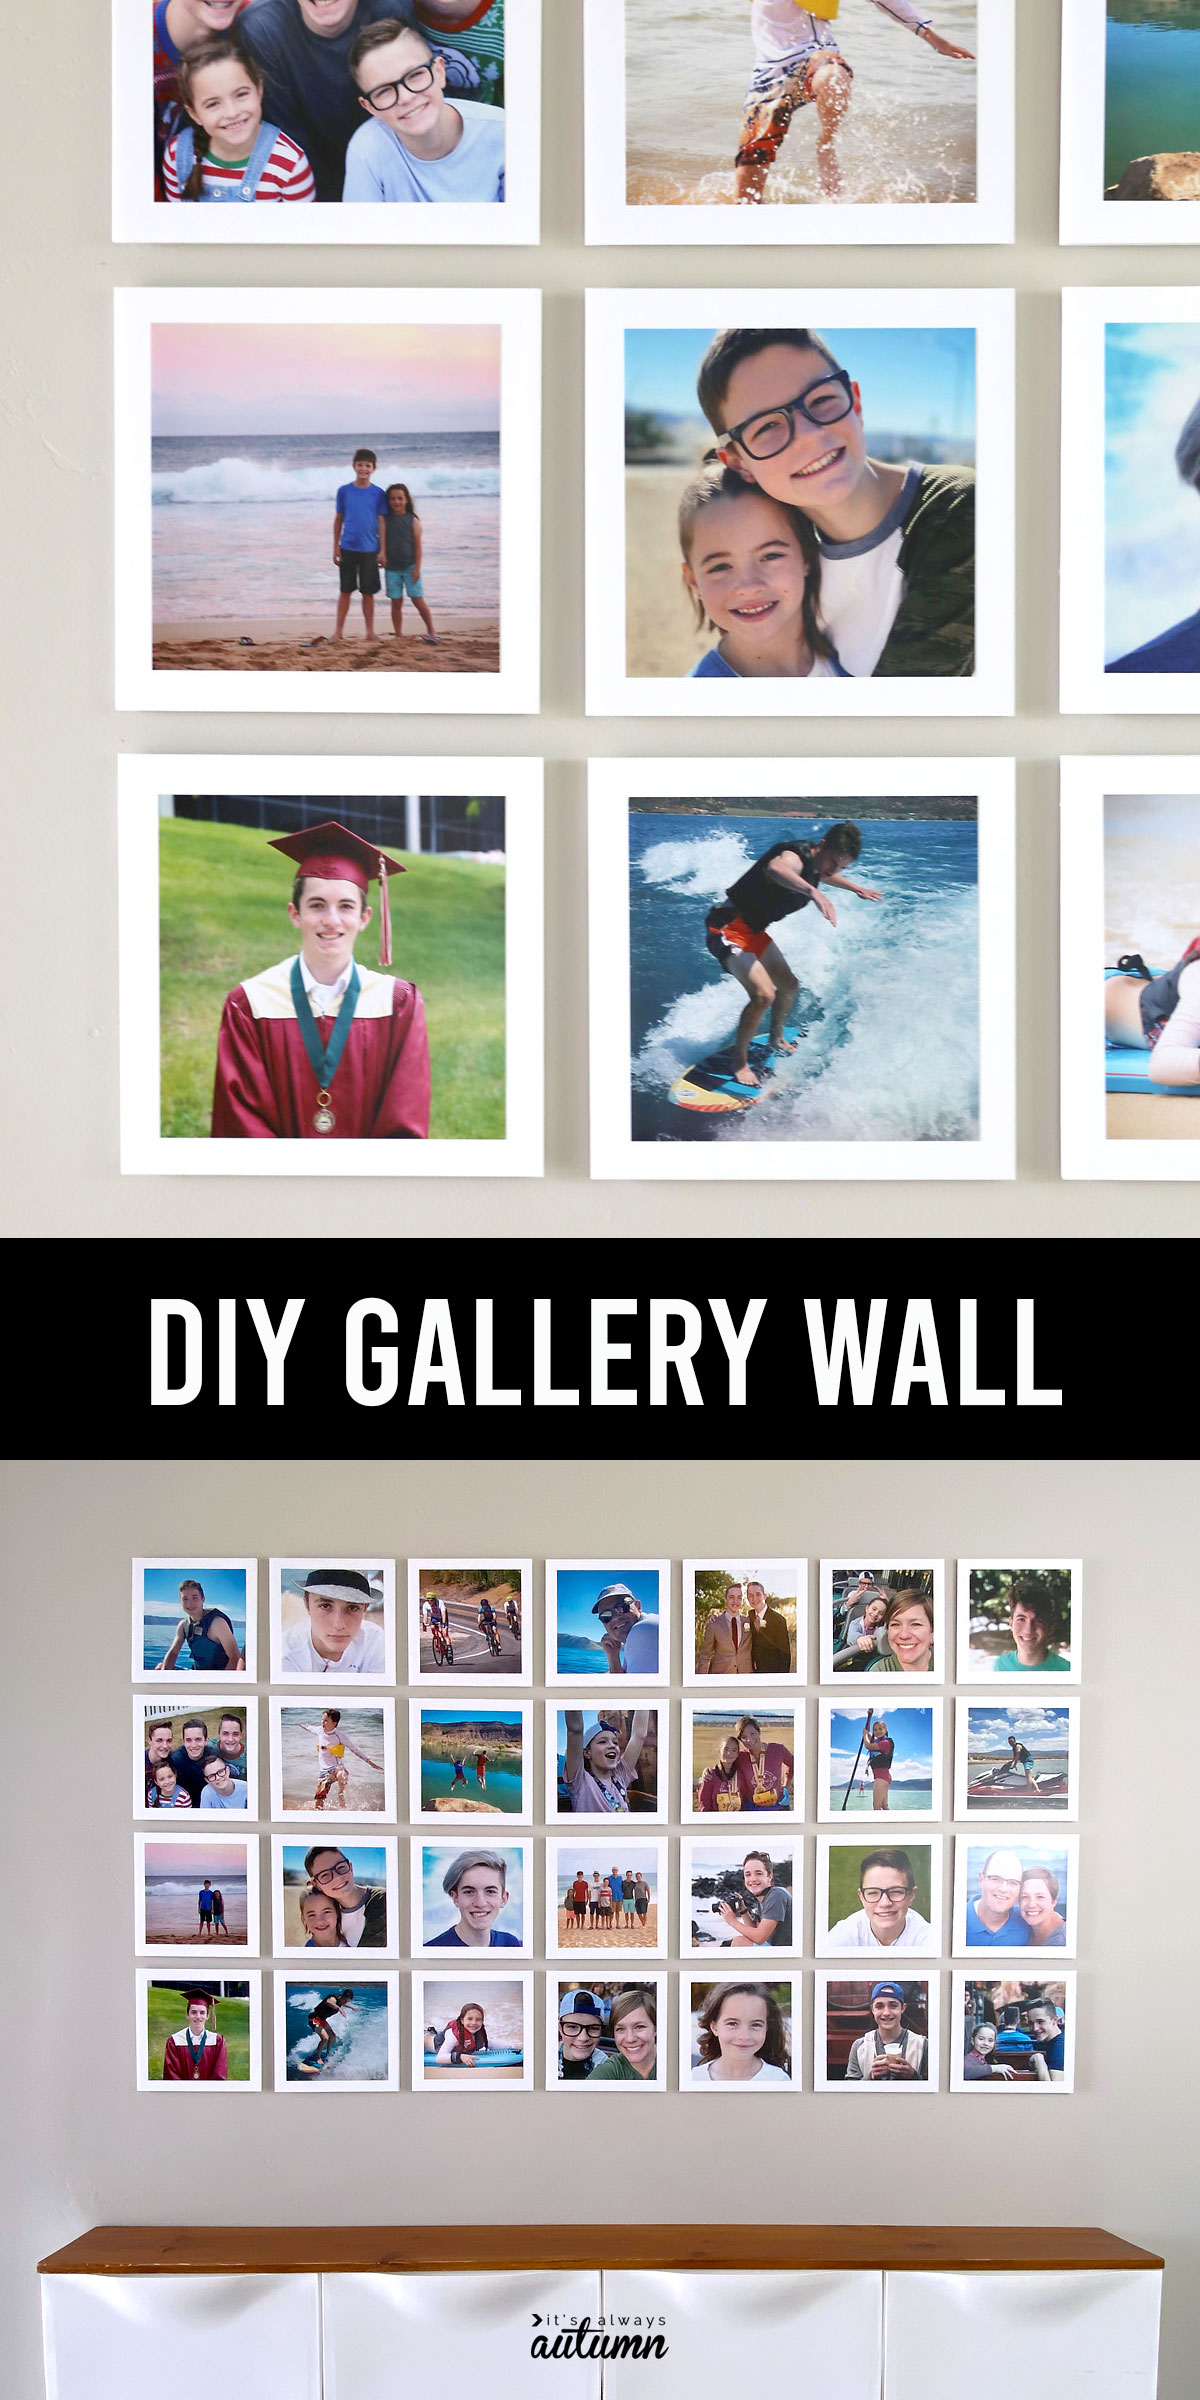 DIY gallery wall made from photos mounted on squares of foam core board